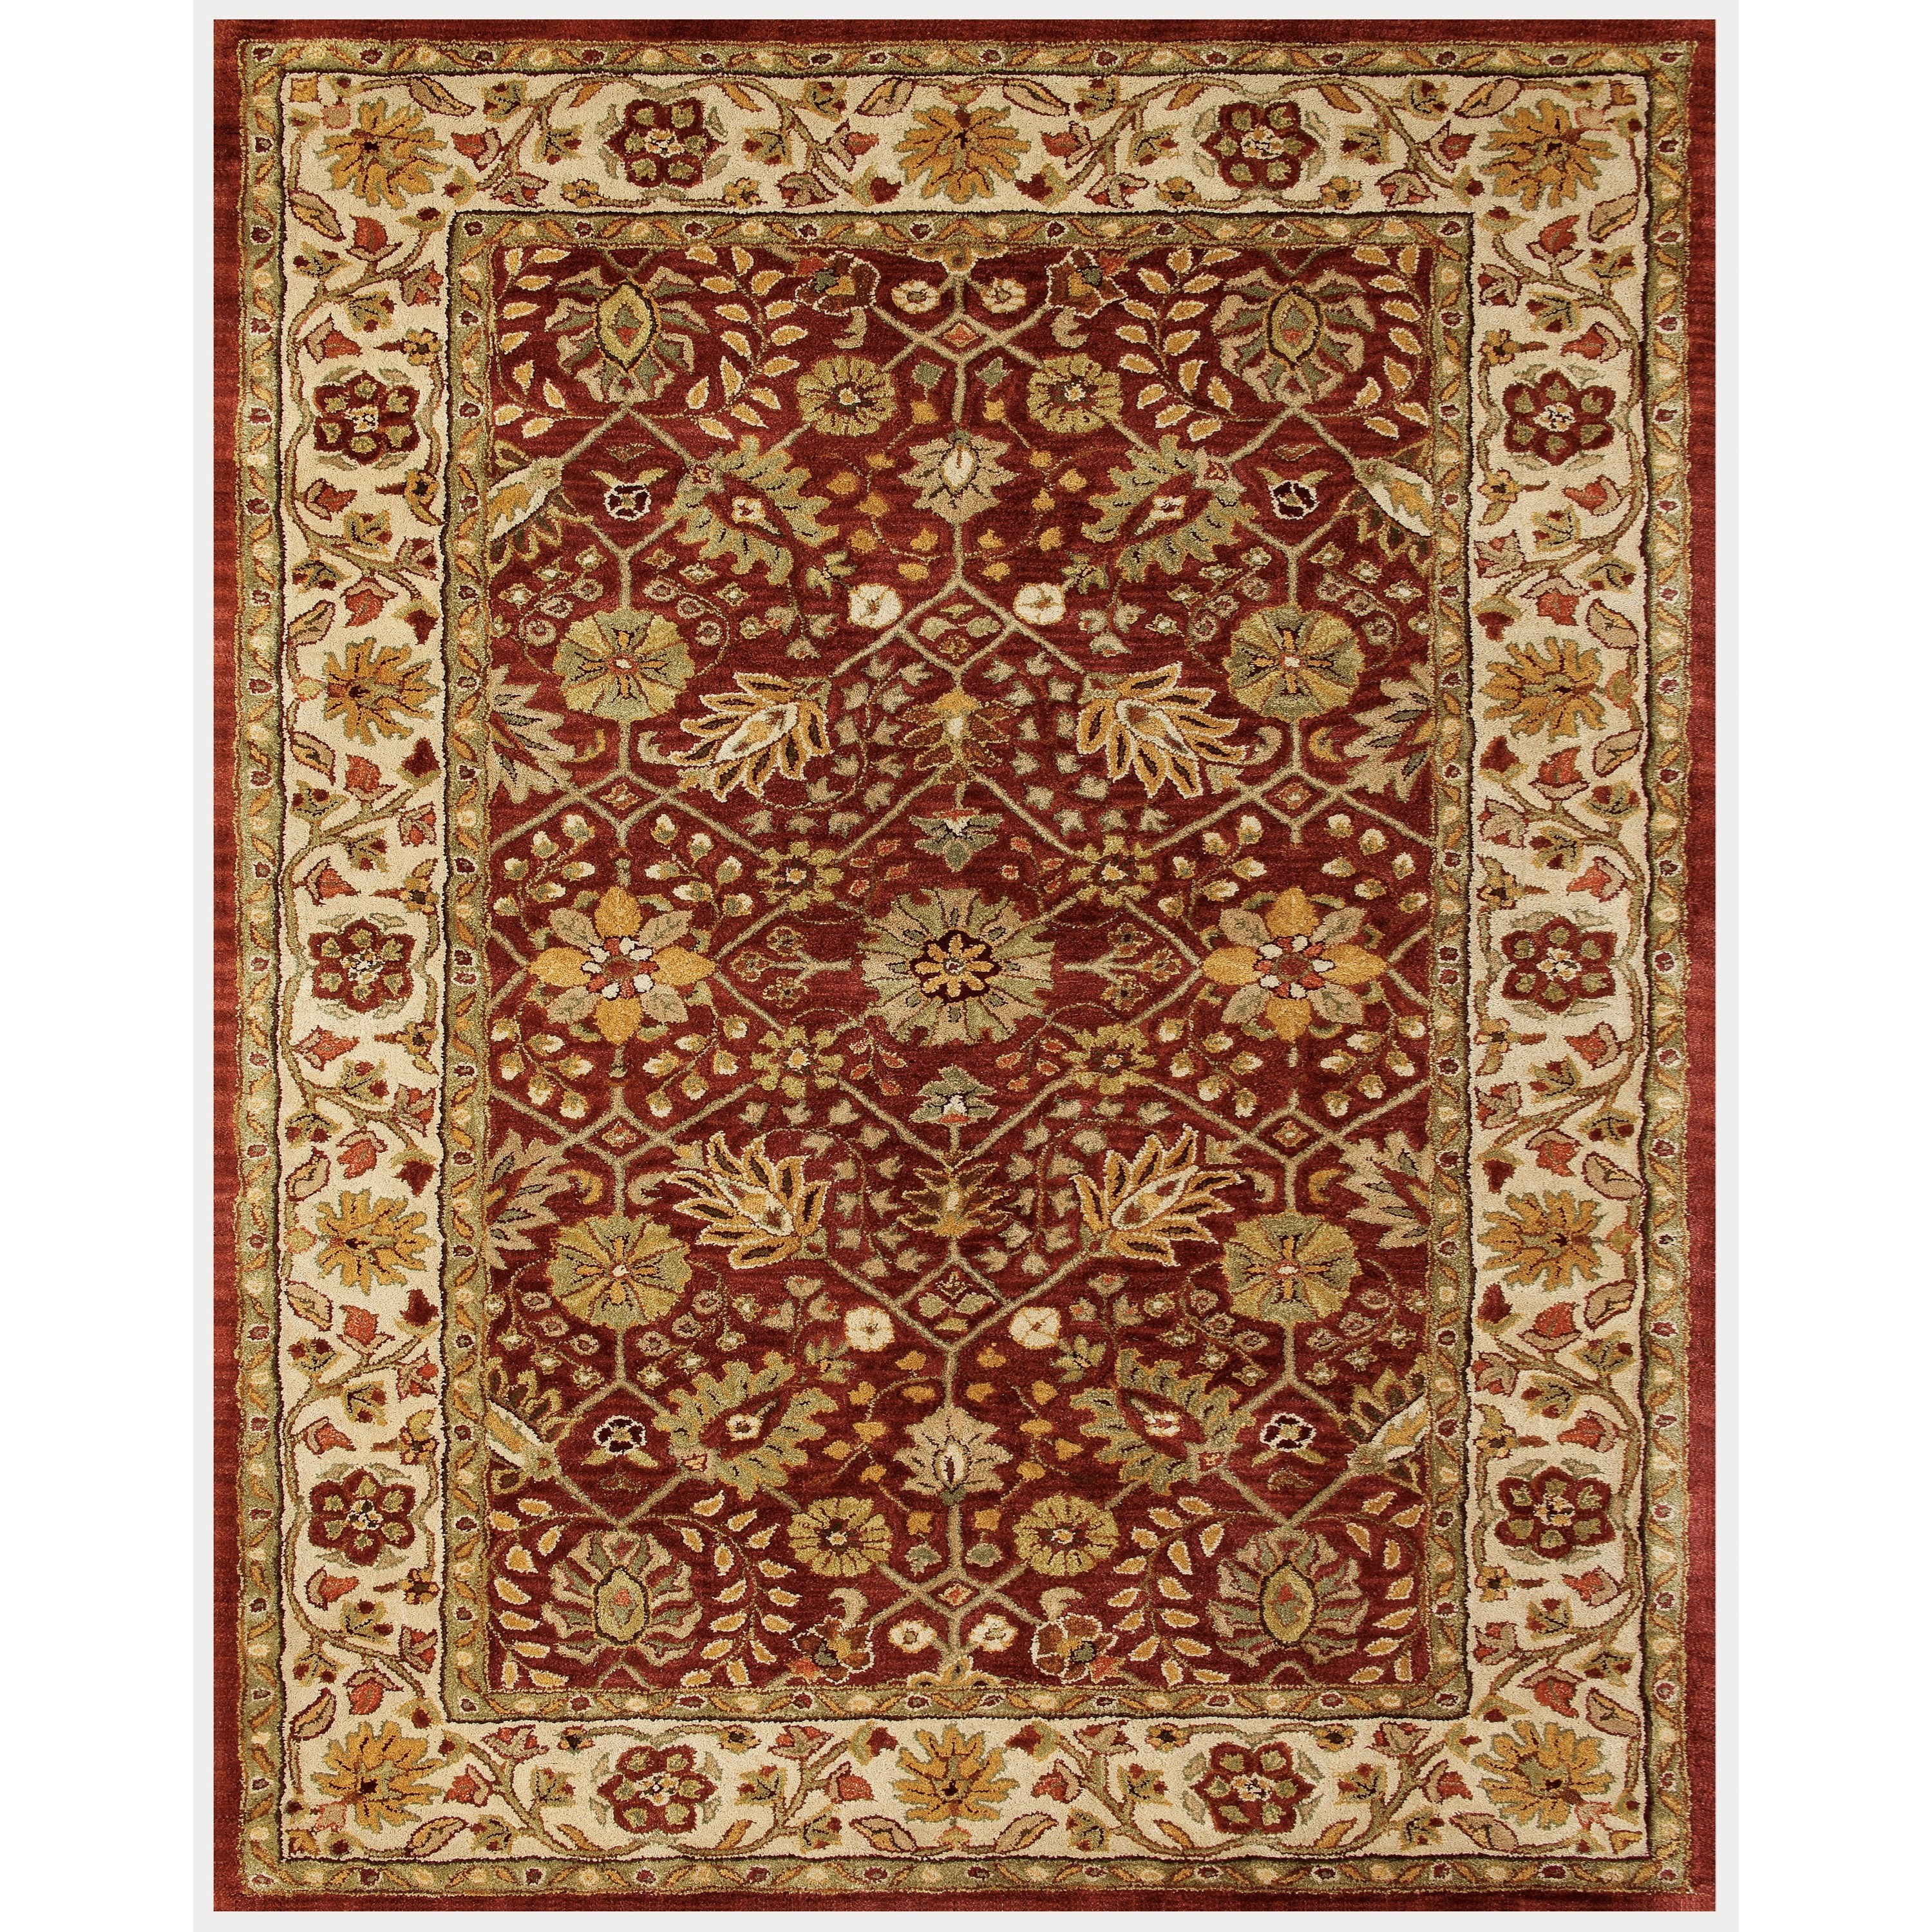 "Alexandra Cranberry/Ivory 3'-6"" x 5'-6"" Area Rug by Feizy Rugs at Sprintz Furniture"